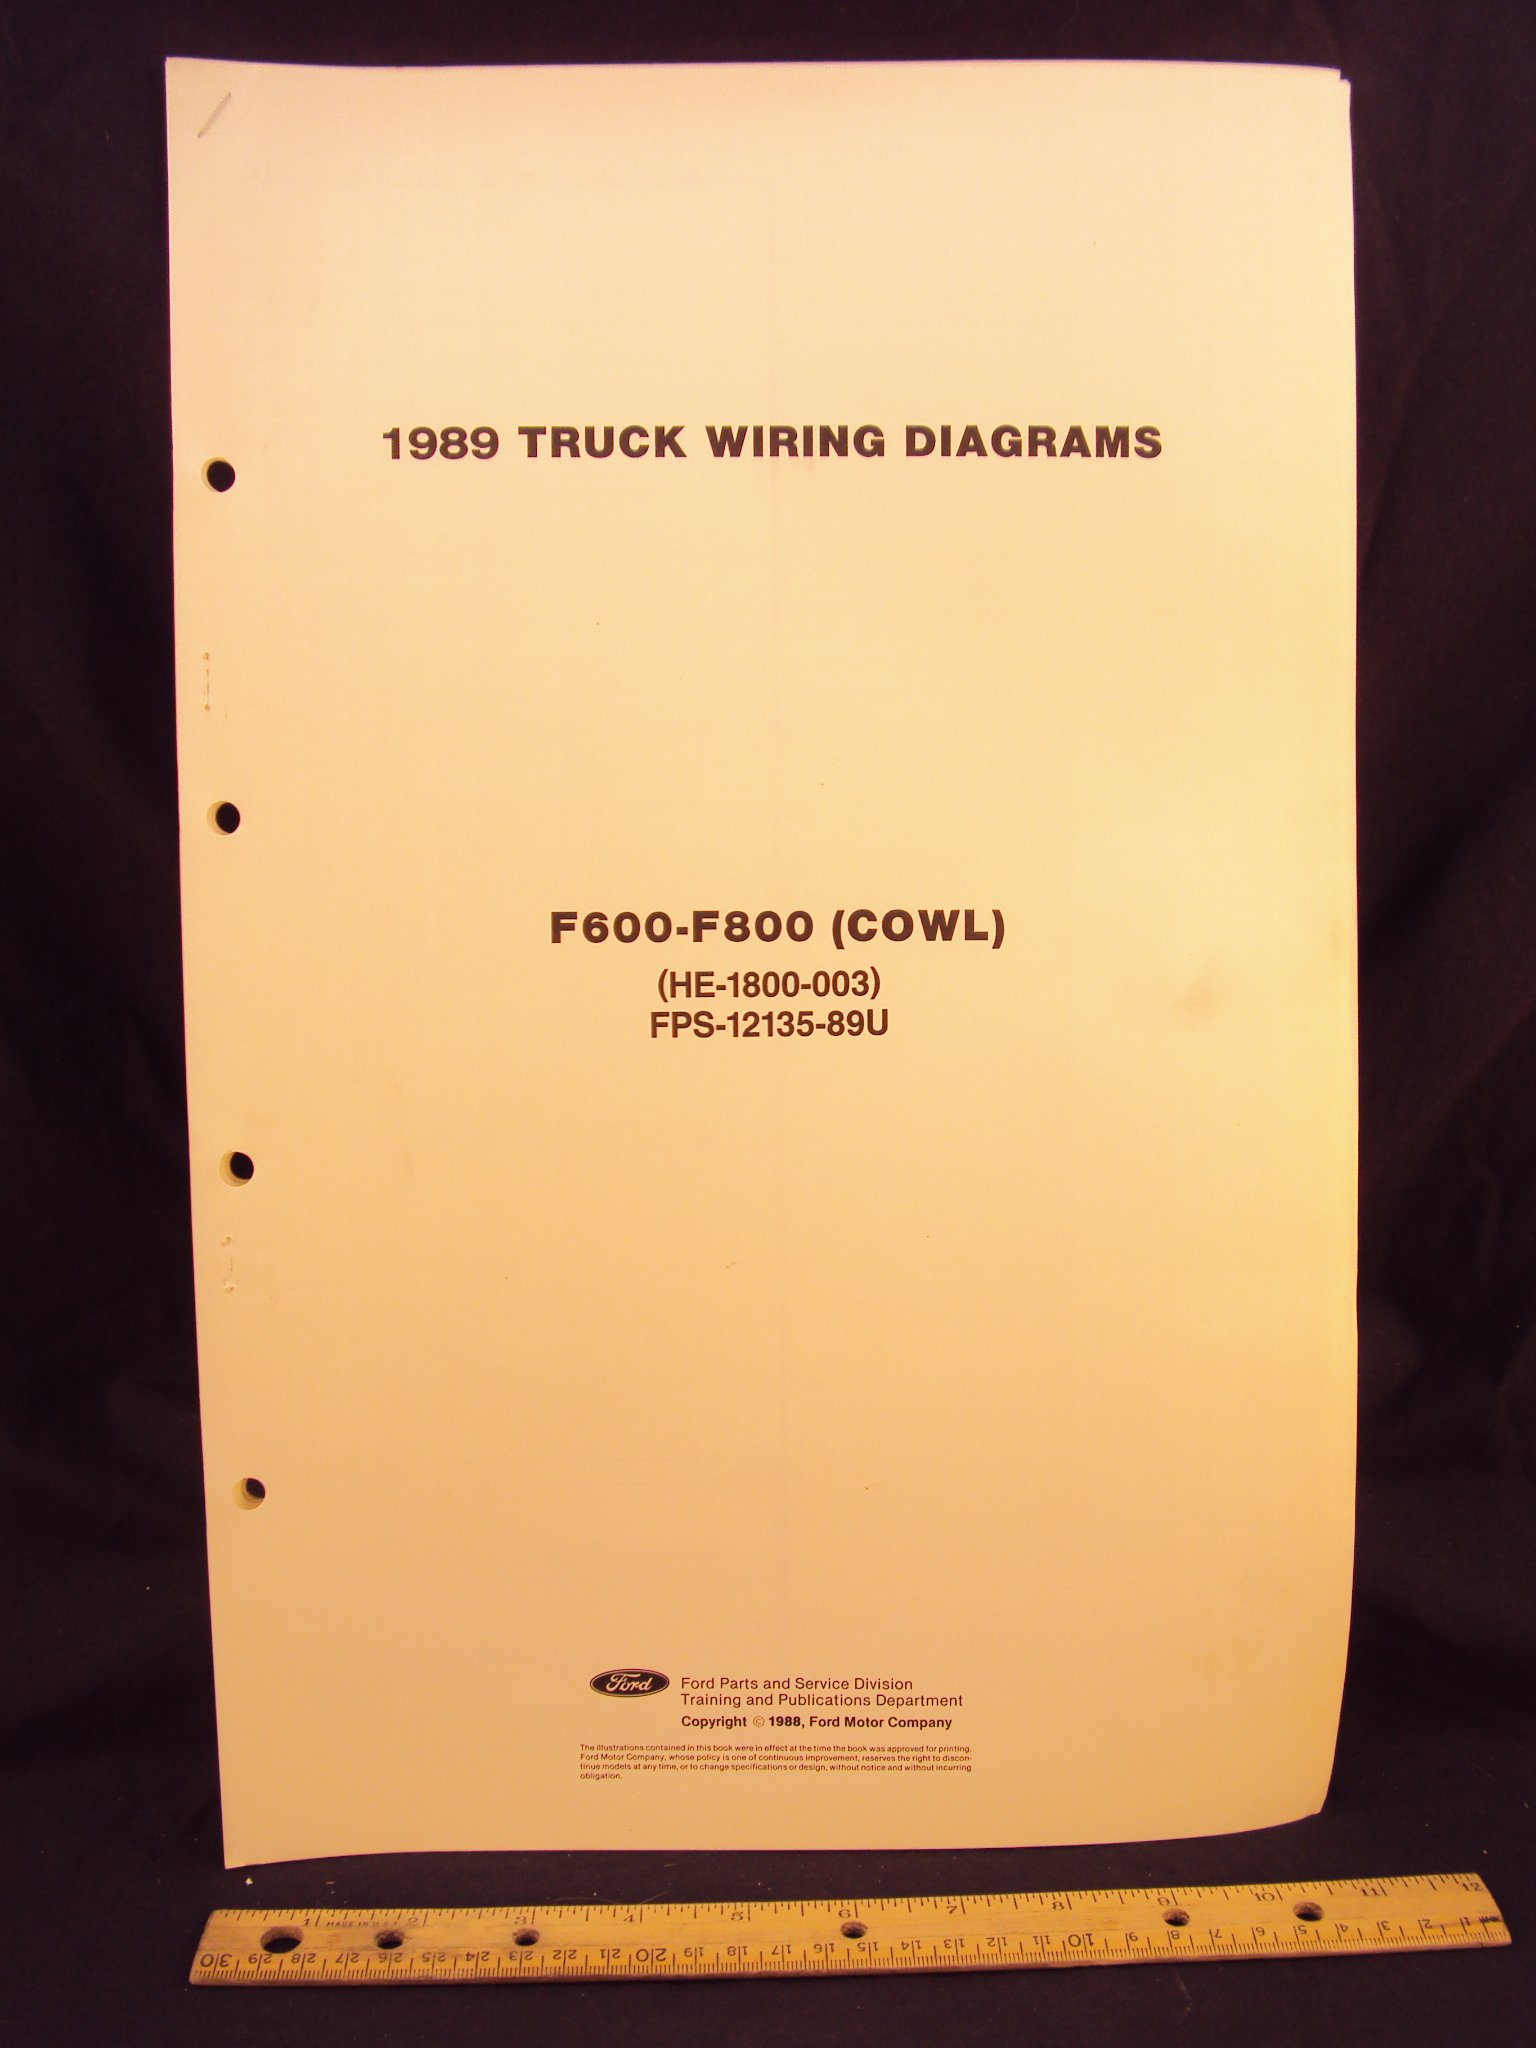 [WLLP_2054]   1989 FORD F600, F700, & F800 Series Cowl Truck Electrical Wiring Diagrams /  Schematics: Ford Motor Company: Amazon.com: Books | 1989 Ford F800 Wiring |  | Amazon.com